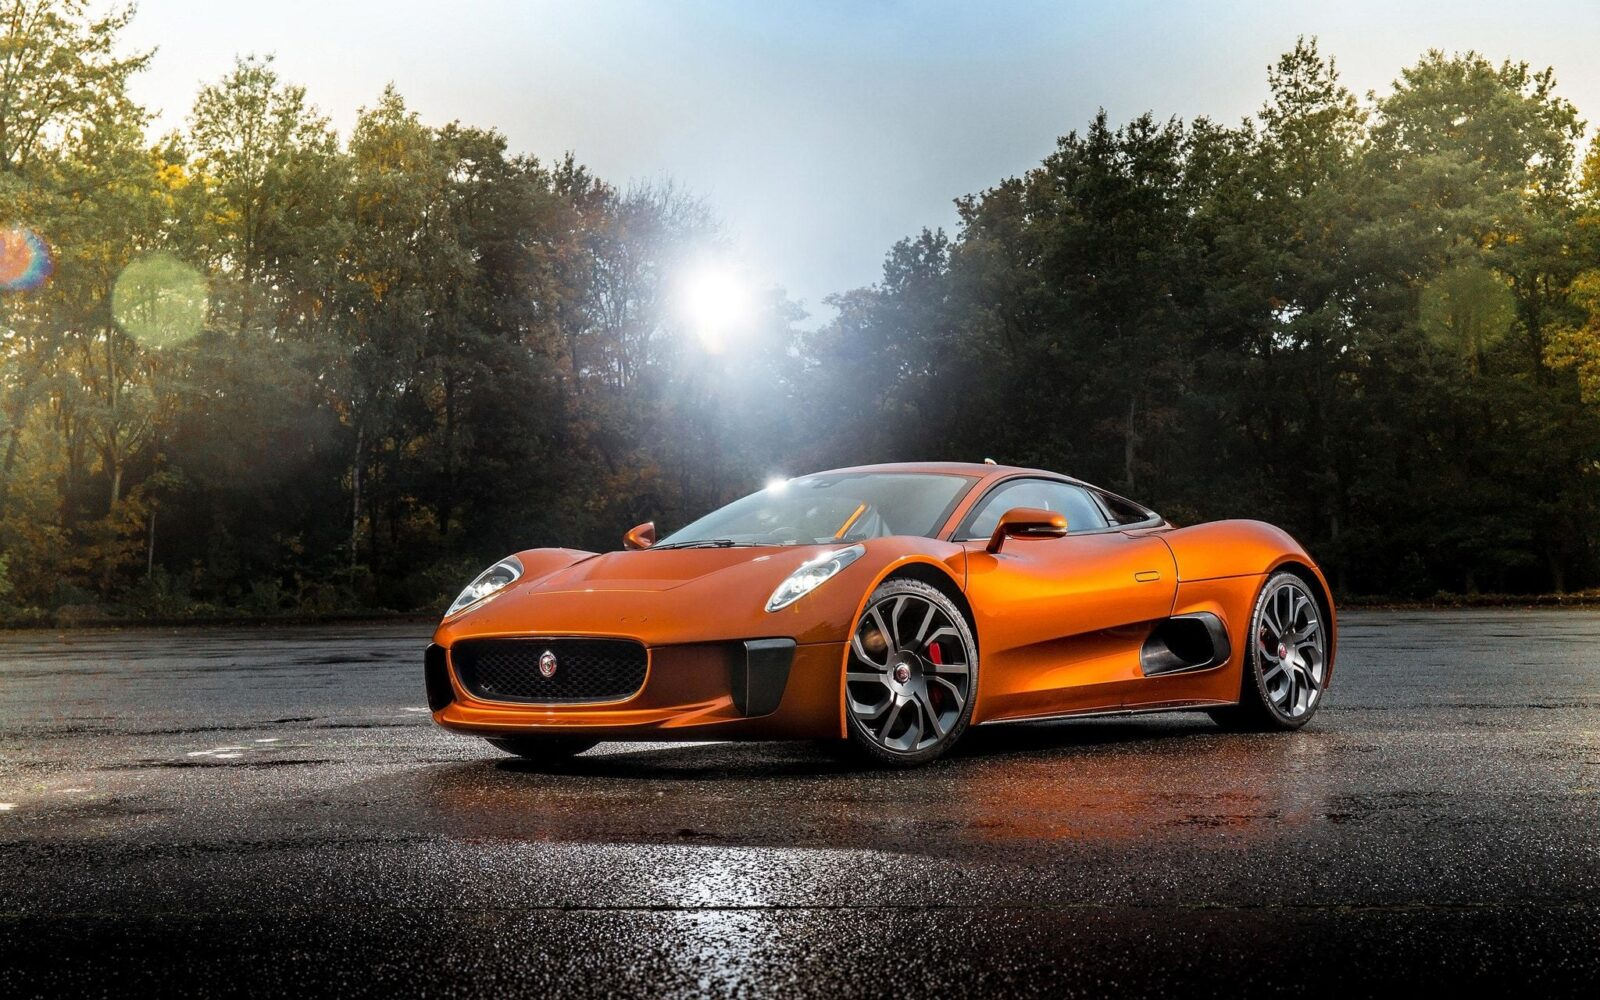 Jaguar C X75 HD wallpapers